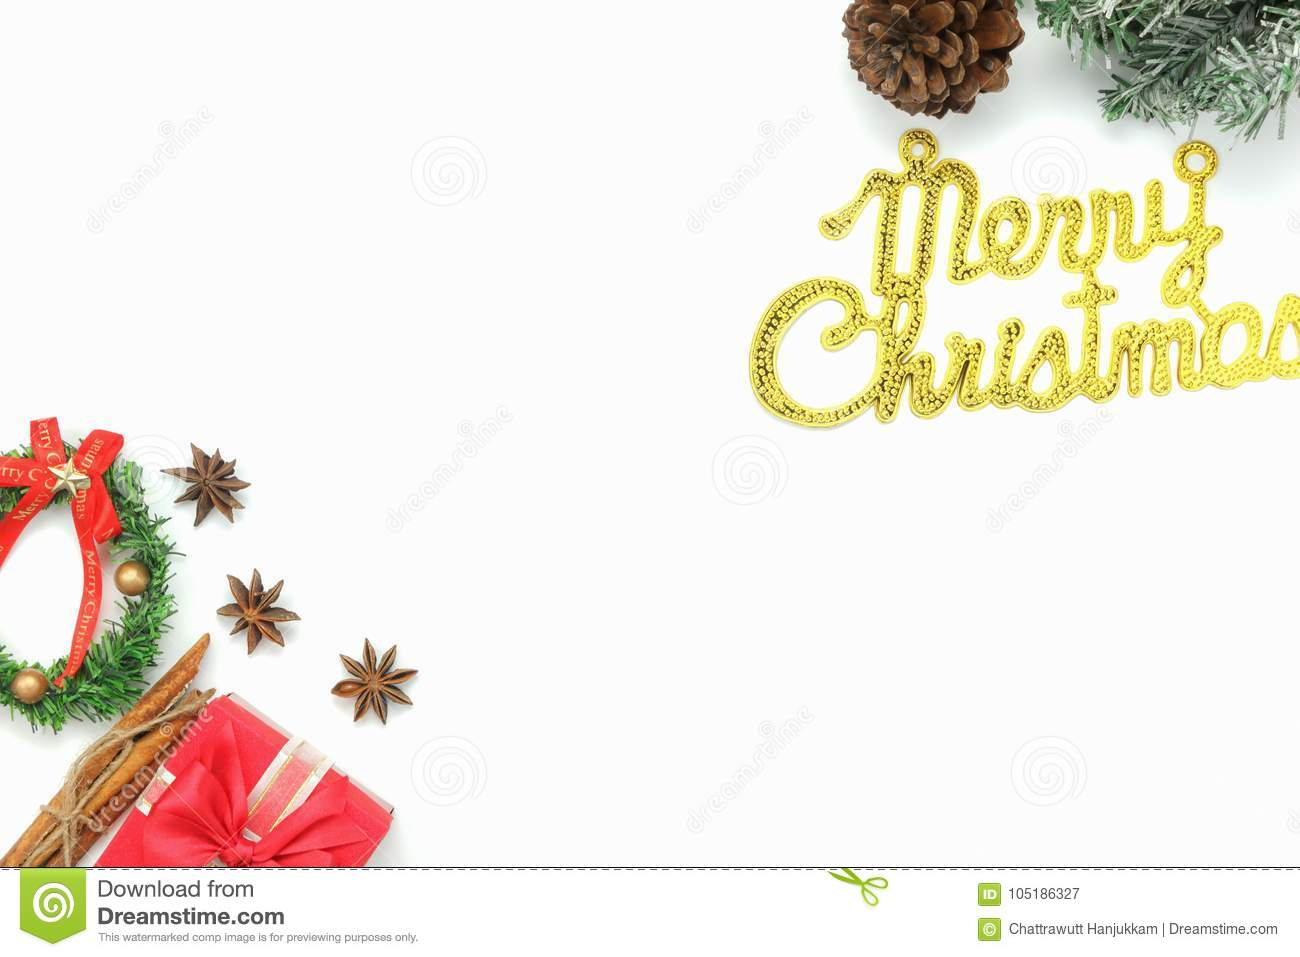 above view aerial image of ornaments decorations merry christmas happy new year conceptessential accessories on white background - Essential Christmas Decorations